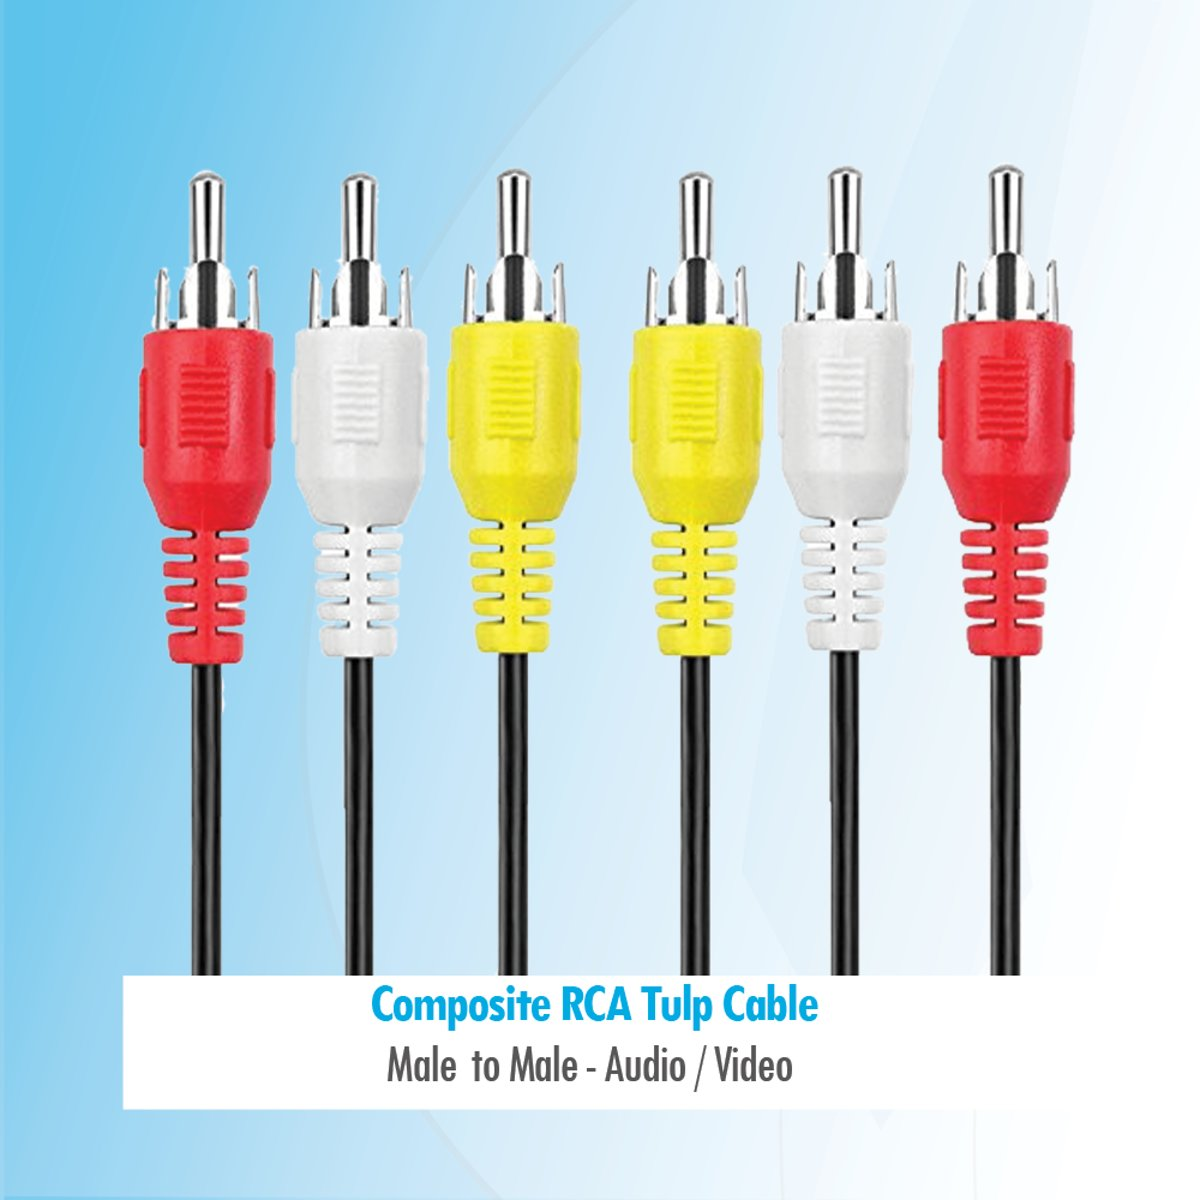 Budget 3 meter composiet RCA / Tulp audio video kabel Male naar Male